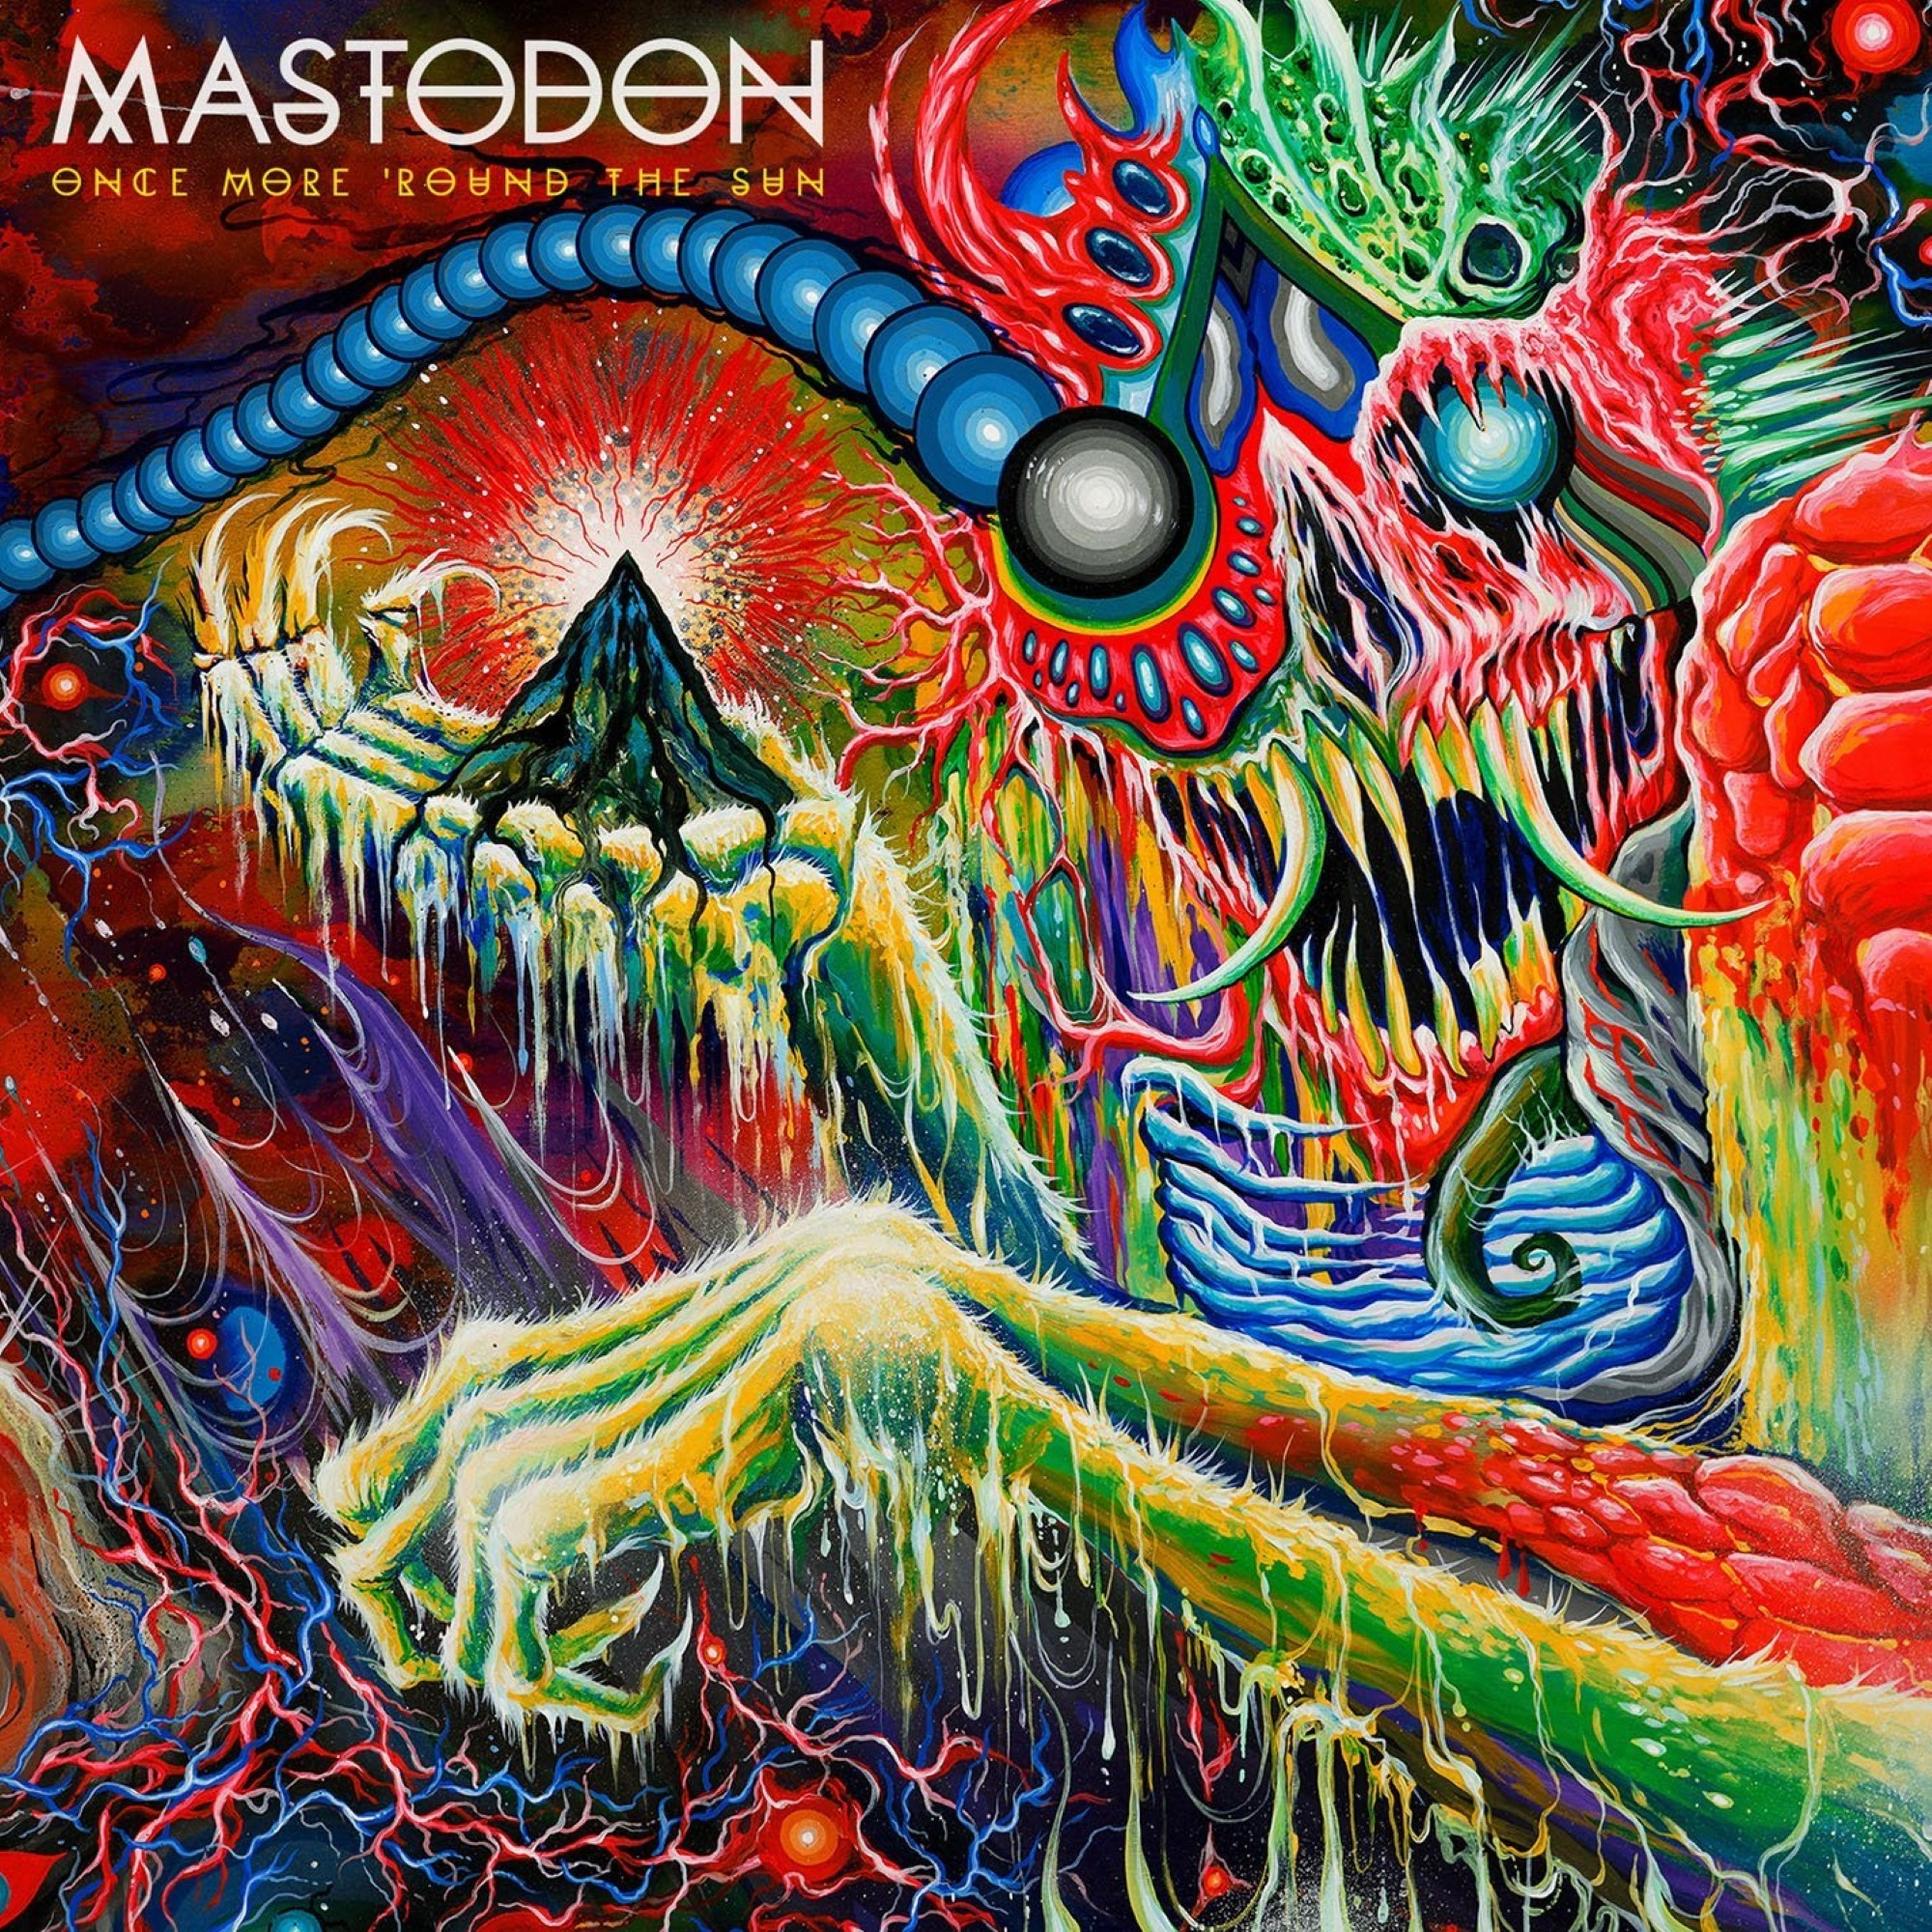 Res: 2000x2000, Mastodon. Once More 'Round The Sun